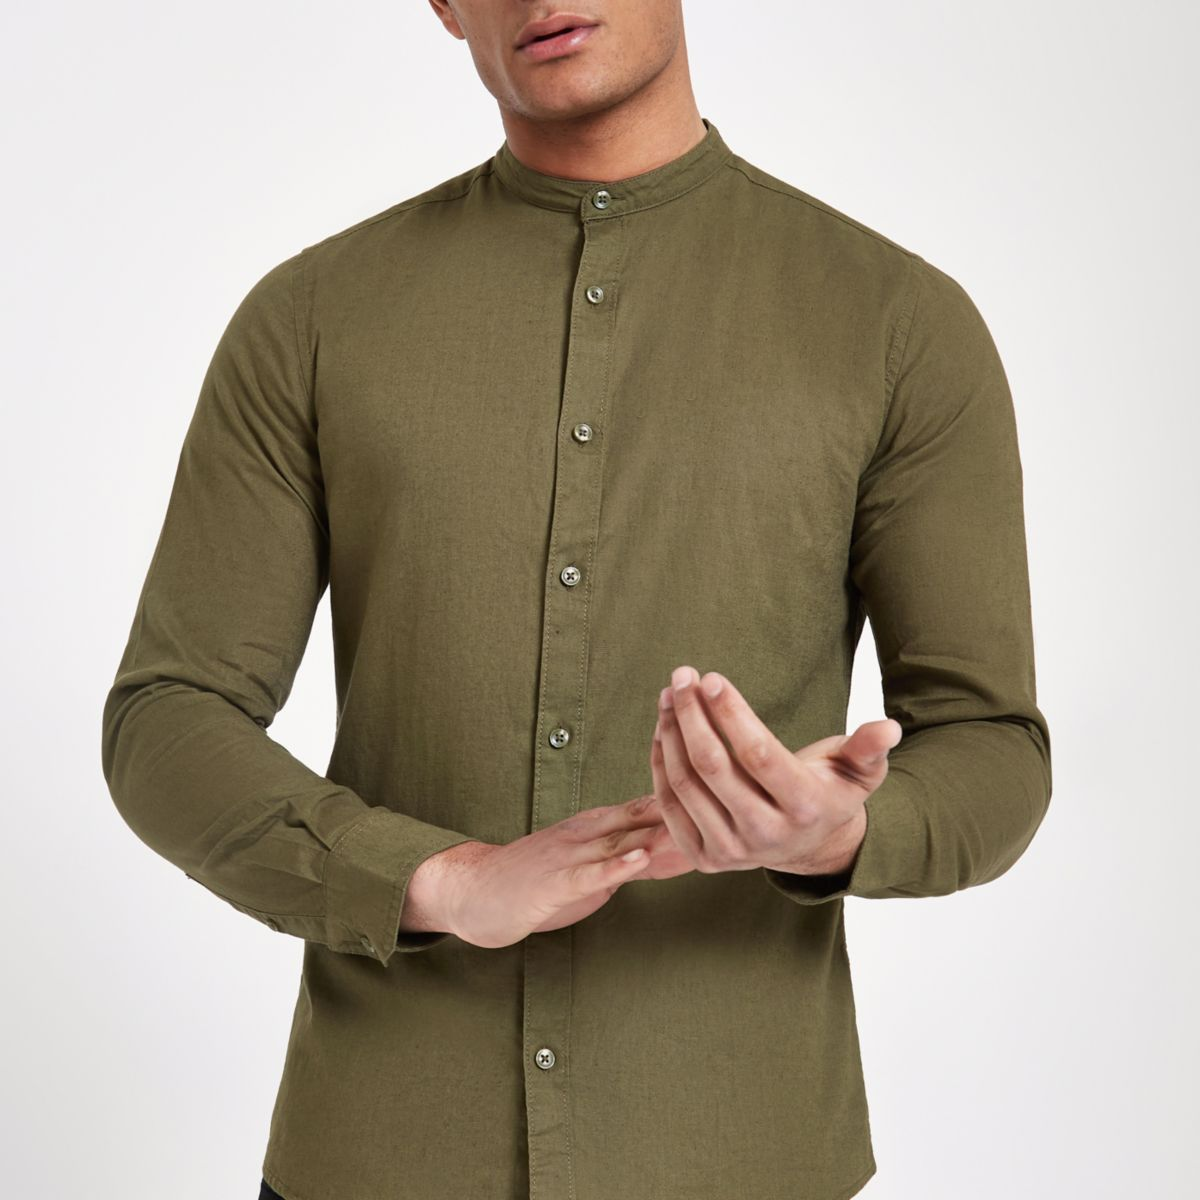 River Island Chemise slim manches courtes Only & Sons marine